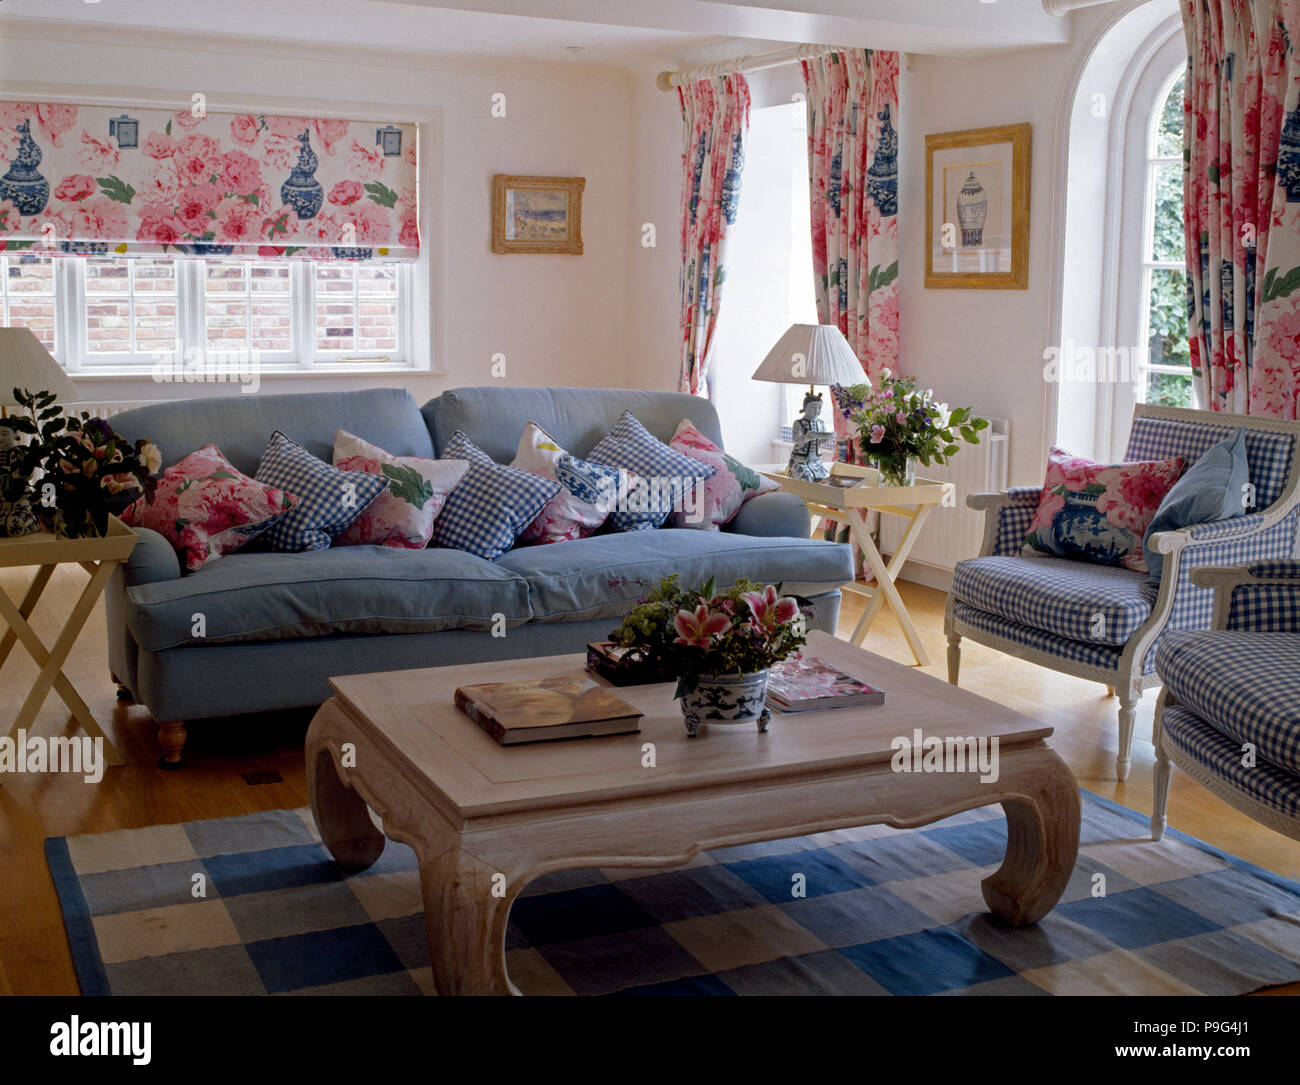 Attirant Lime Washed Coffee Table And A Blue Sofa Piled With Cushions In A Country  Living Room With A Pink Floral Blind